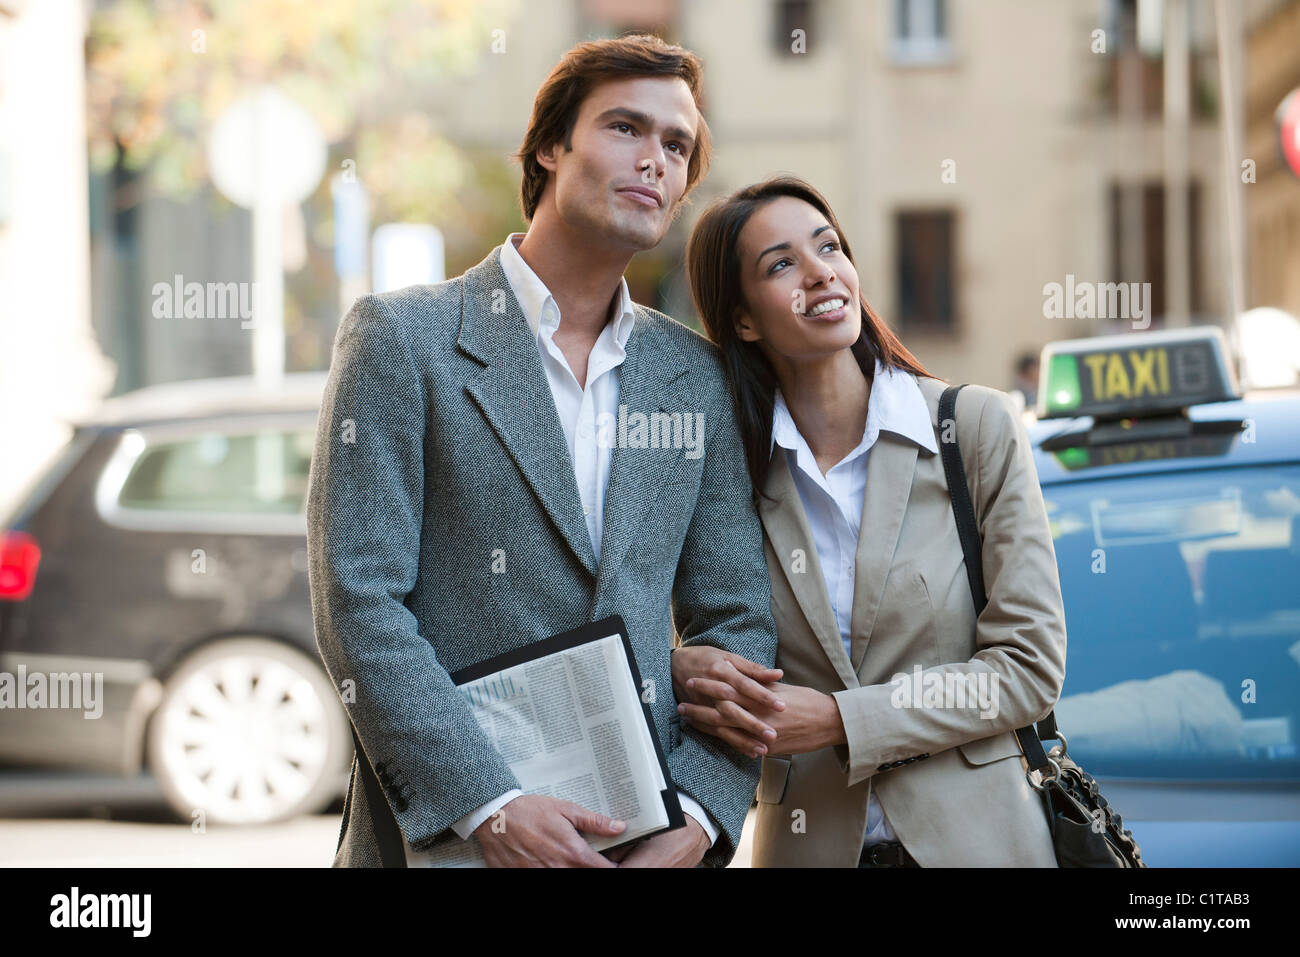 Couple arm in arm outdoors - Stock Image